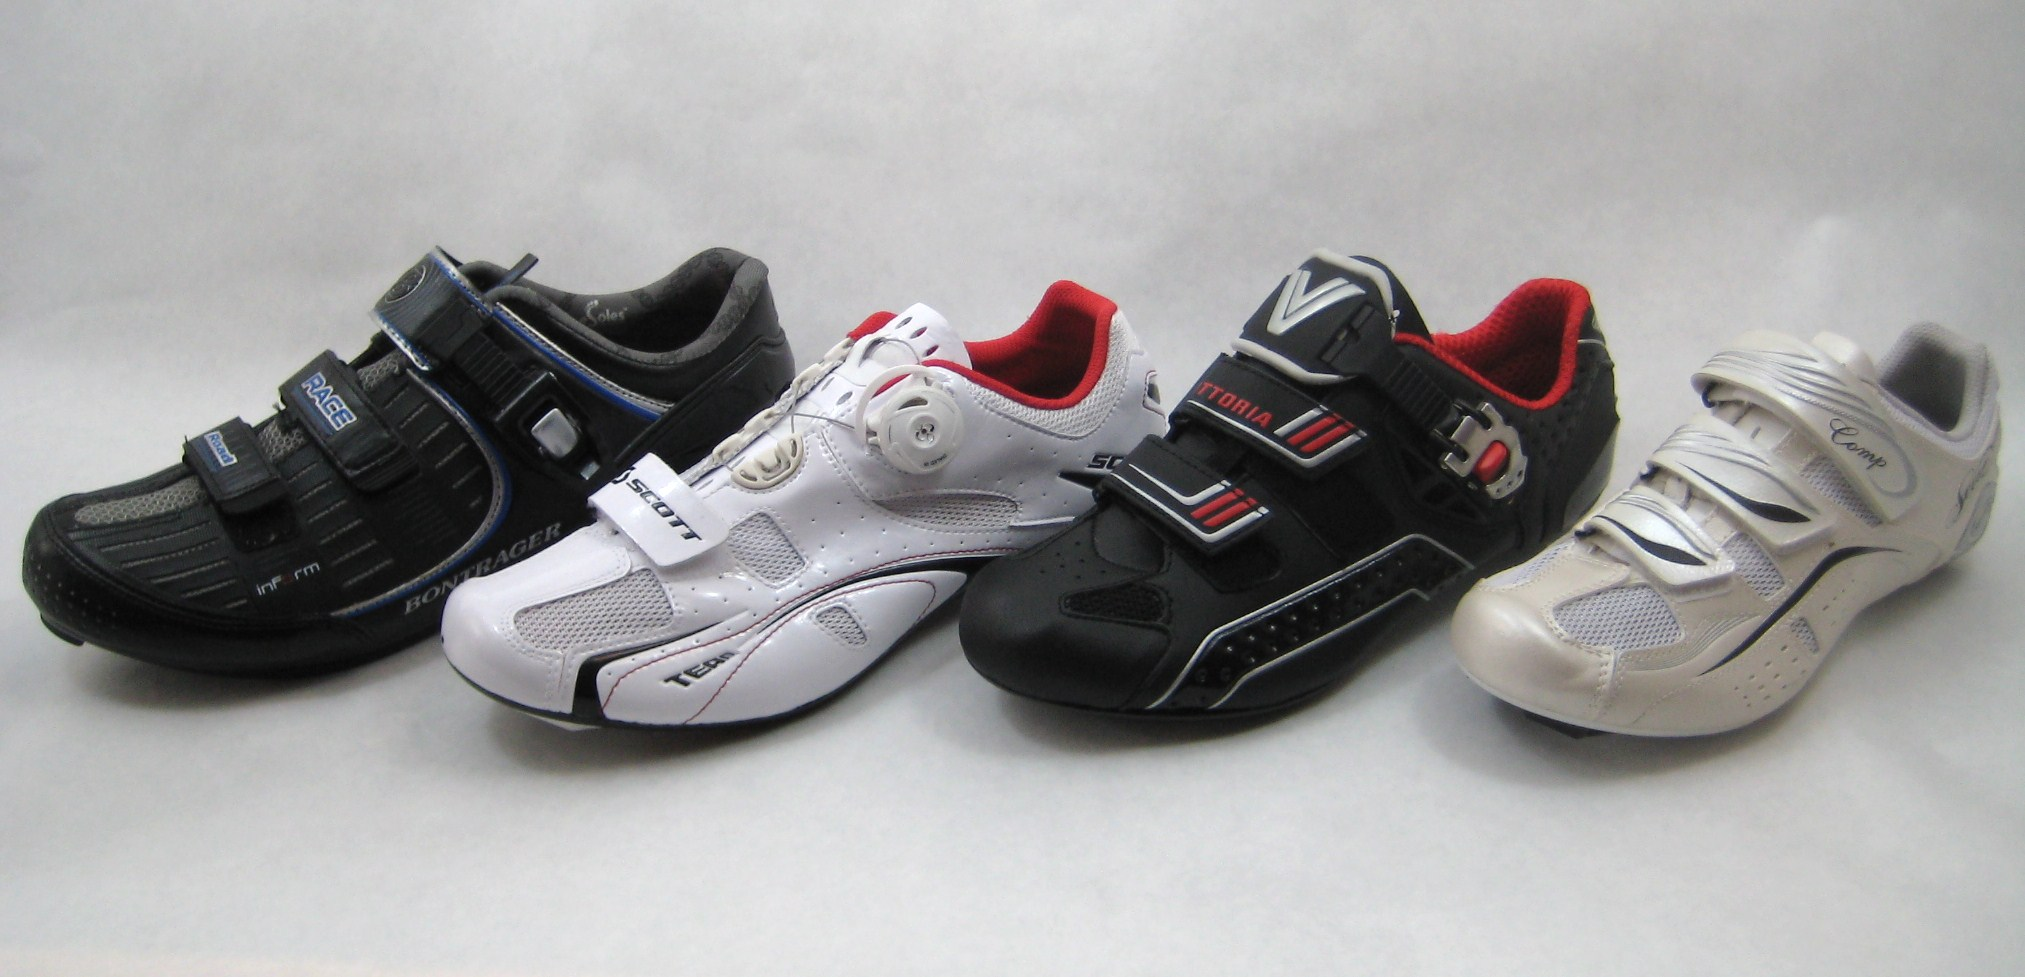 Best Flat Cycling Shoes